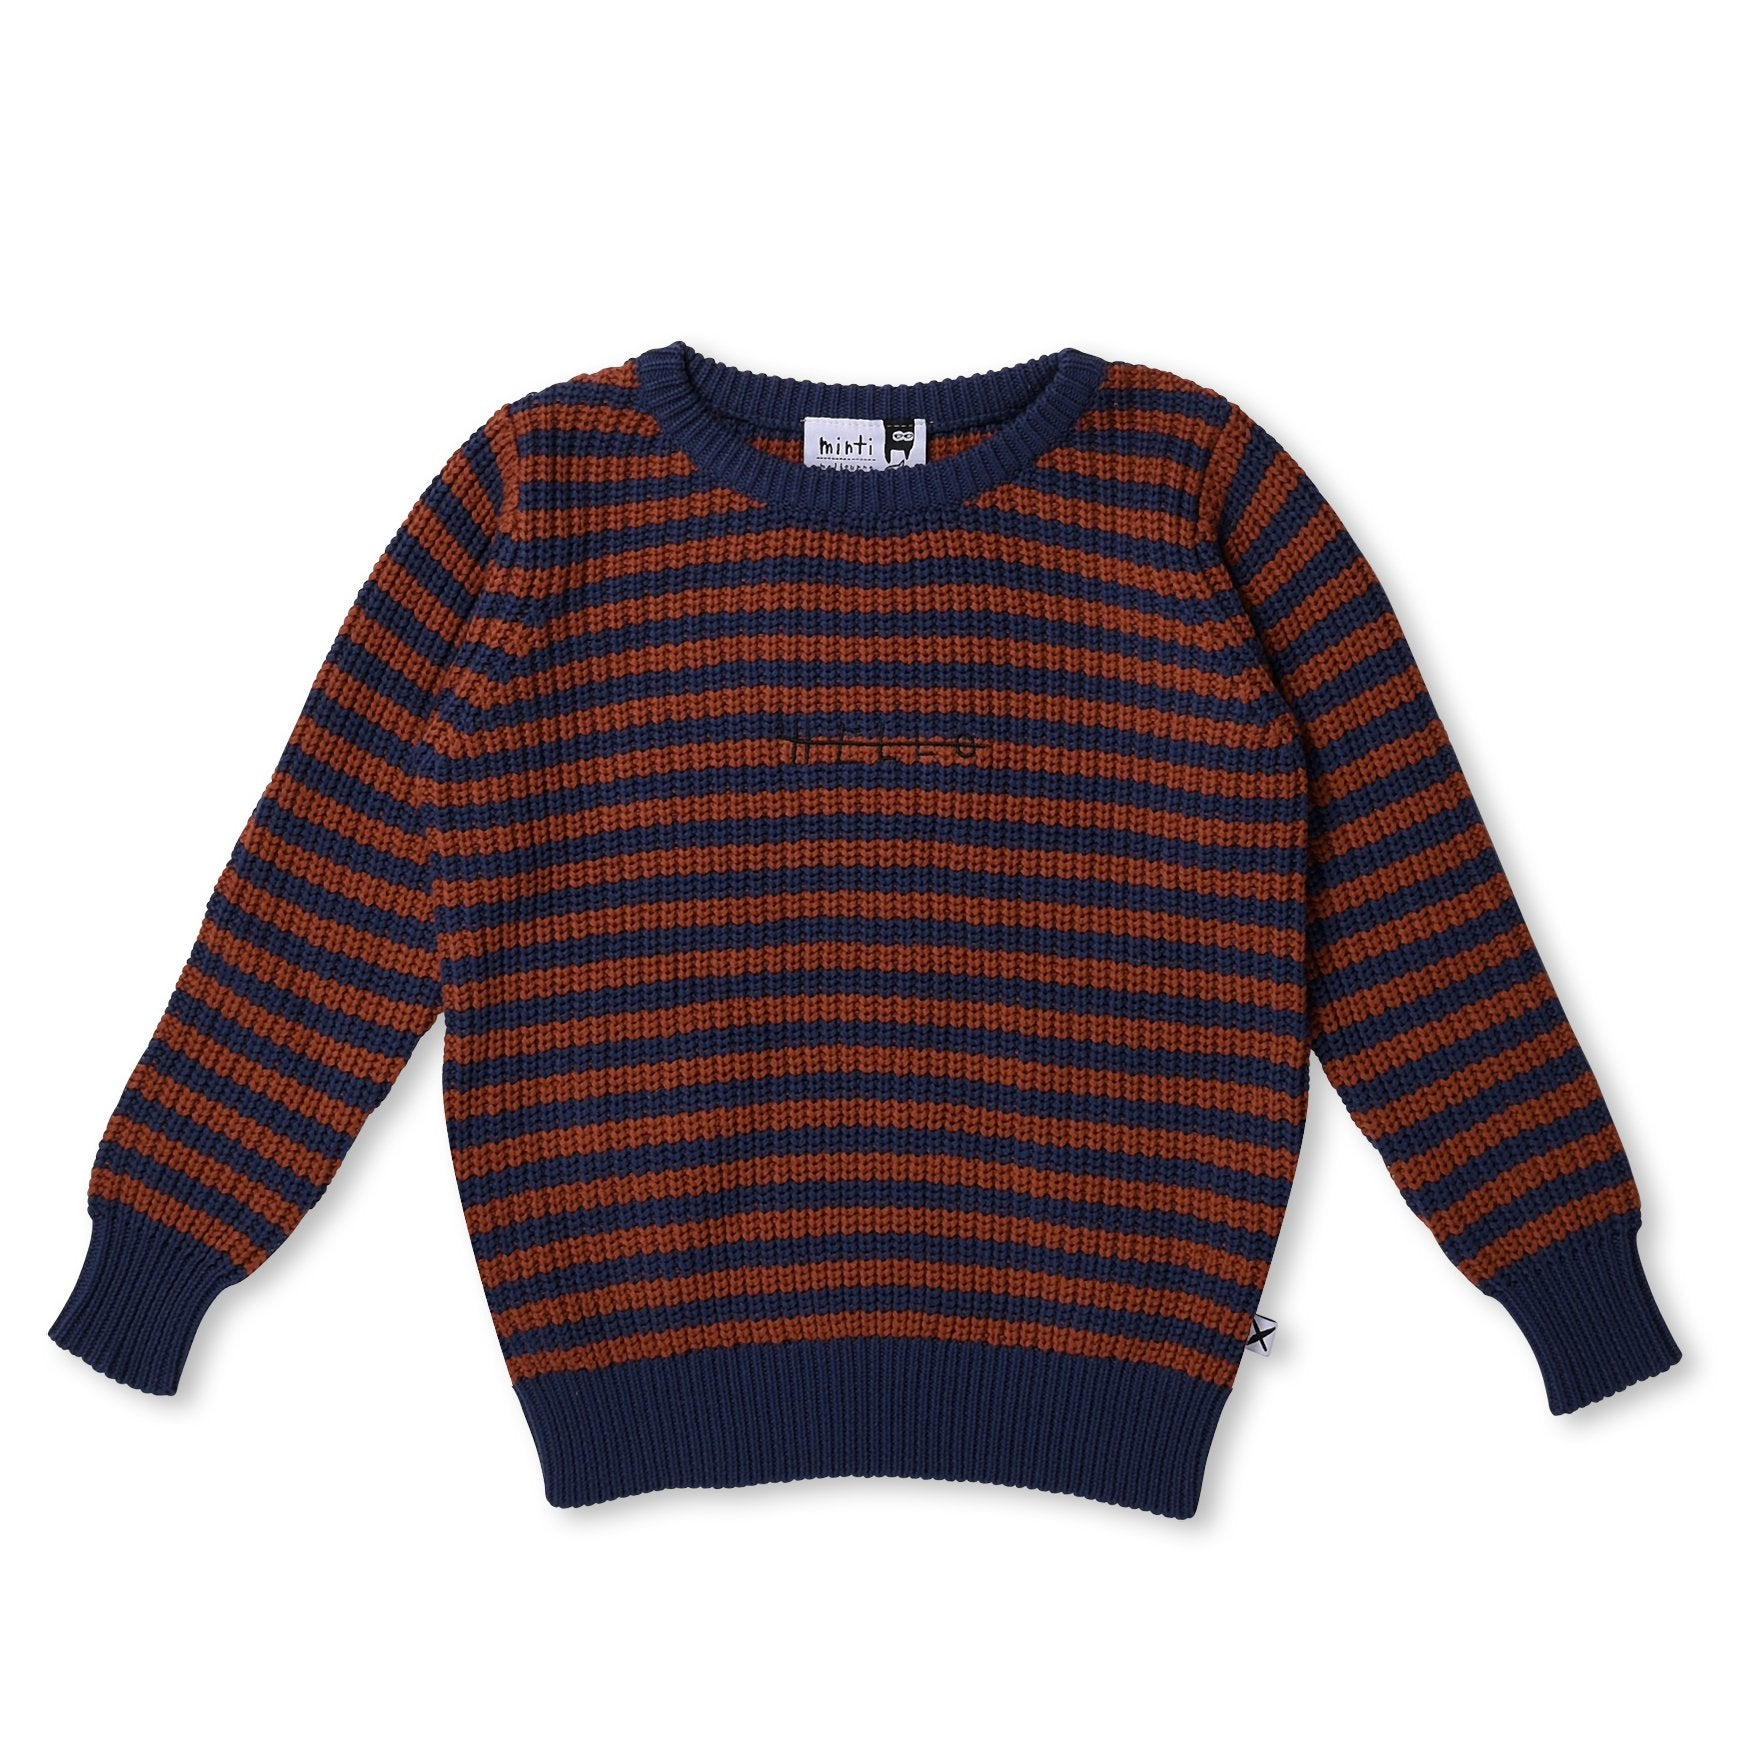 MINTI - CHUNKY KNIT CREW - BLUE/BURNT ORANGE